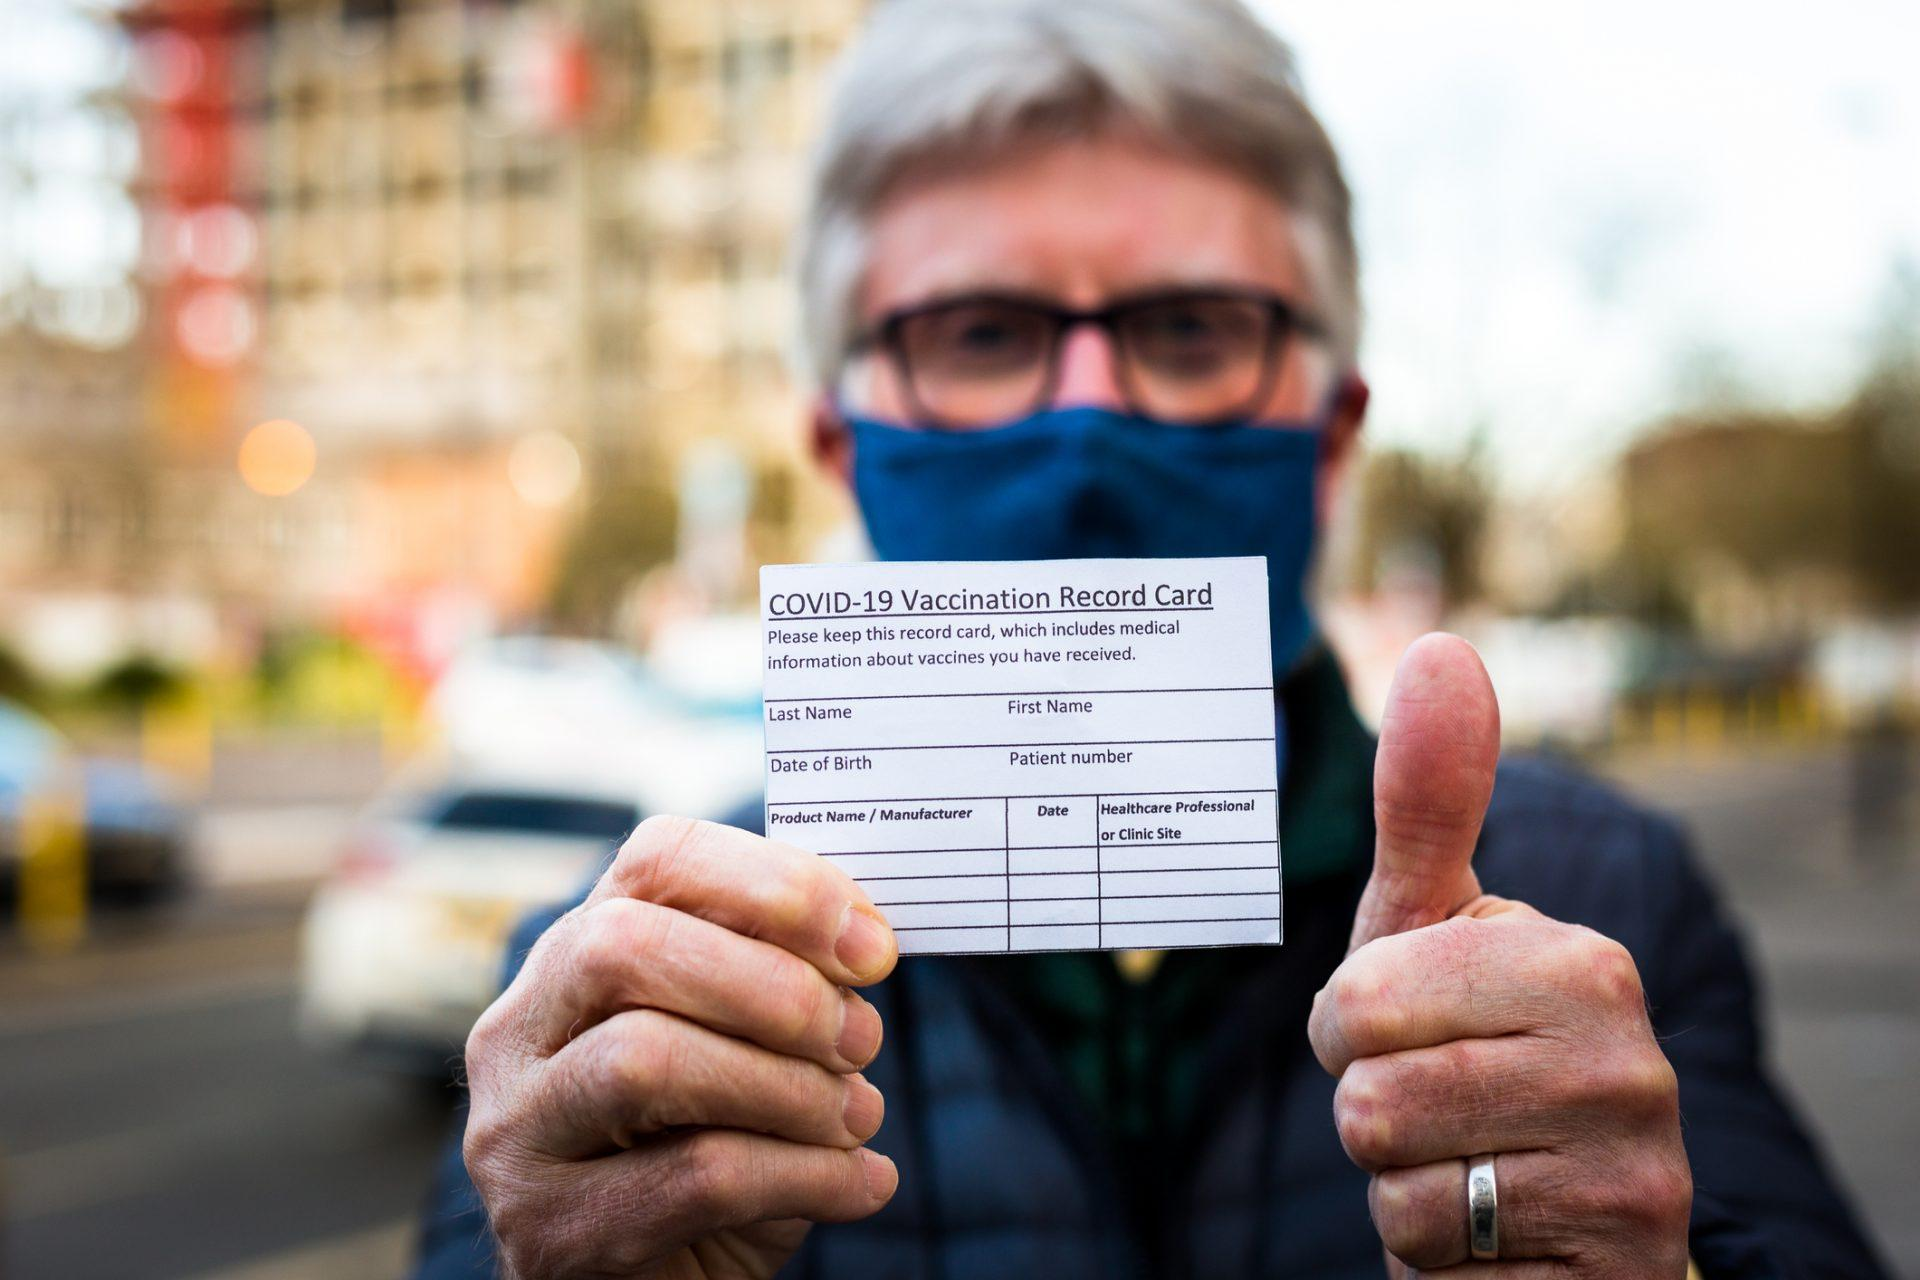 Close up color image depicting a senior man in his 70s holding a card outdoors in the city with details of his covid-19 vaccination.